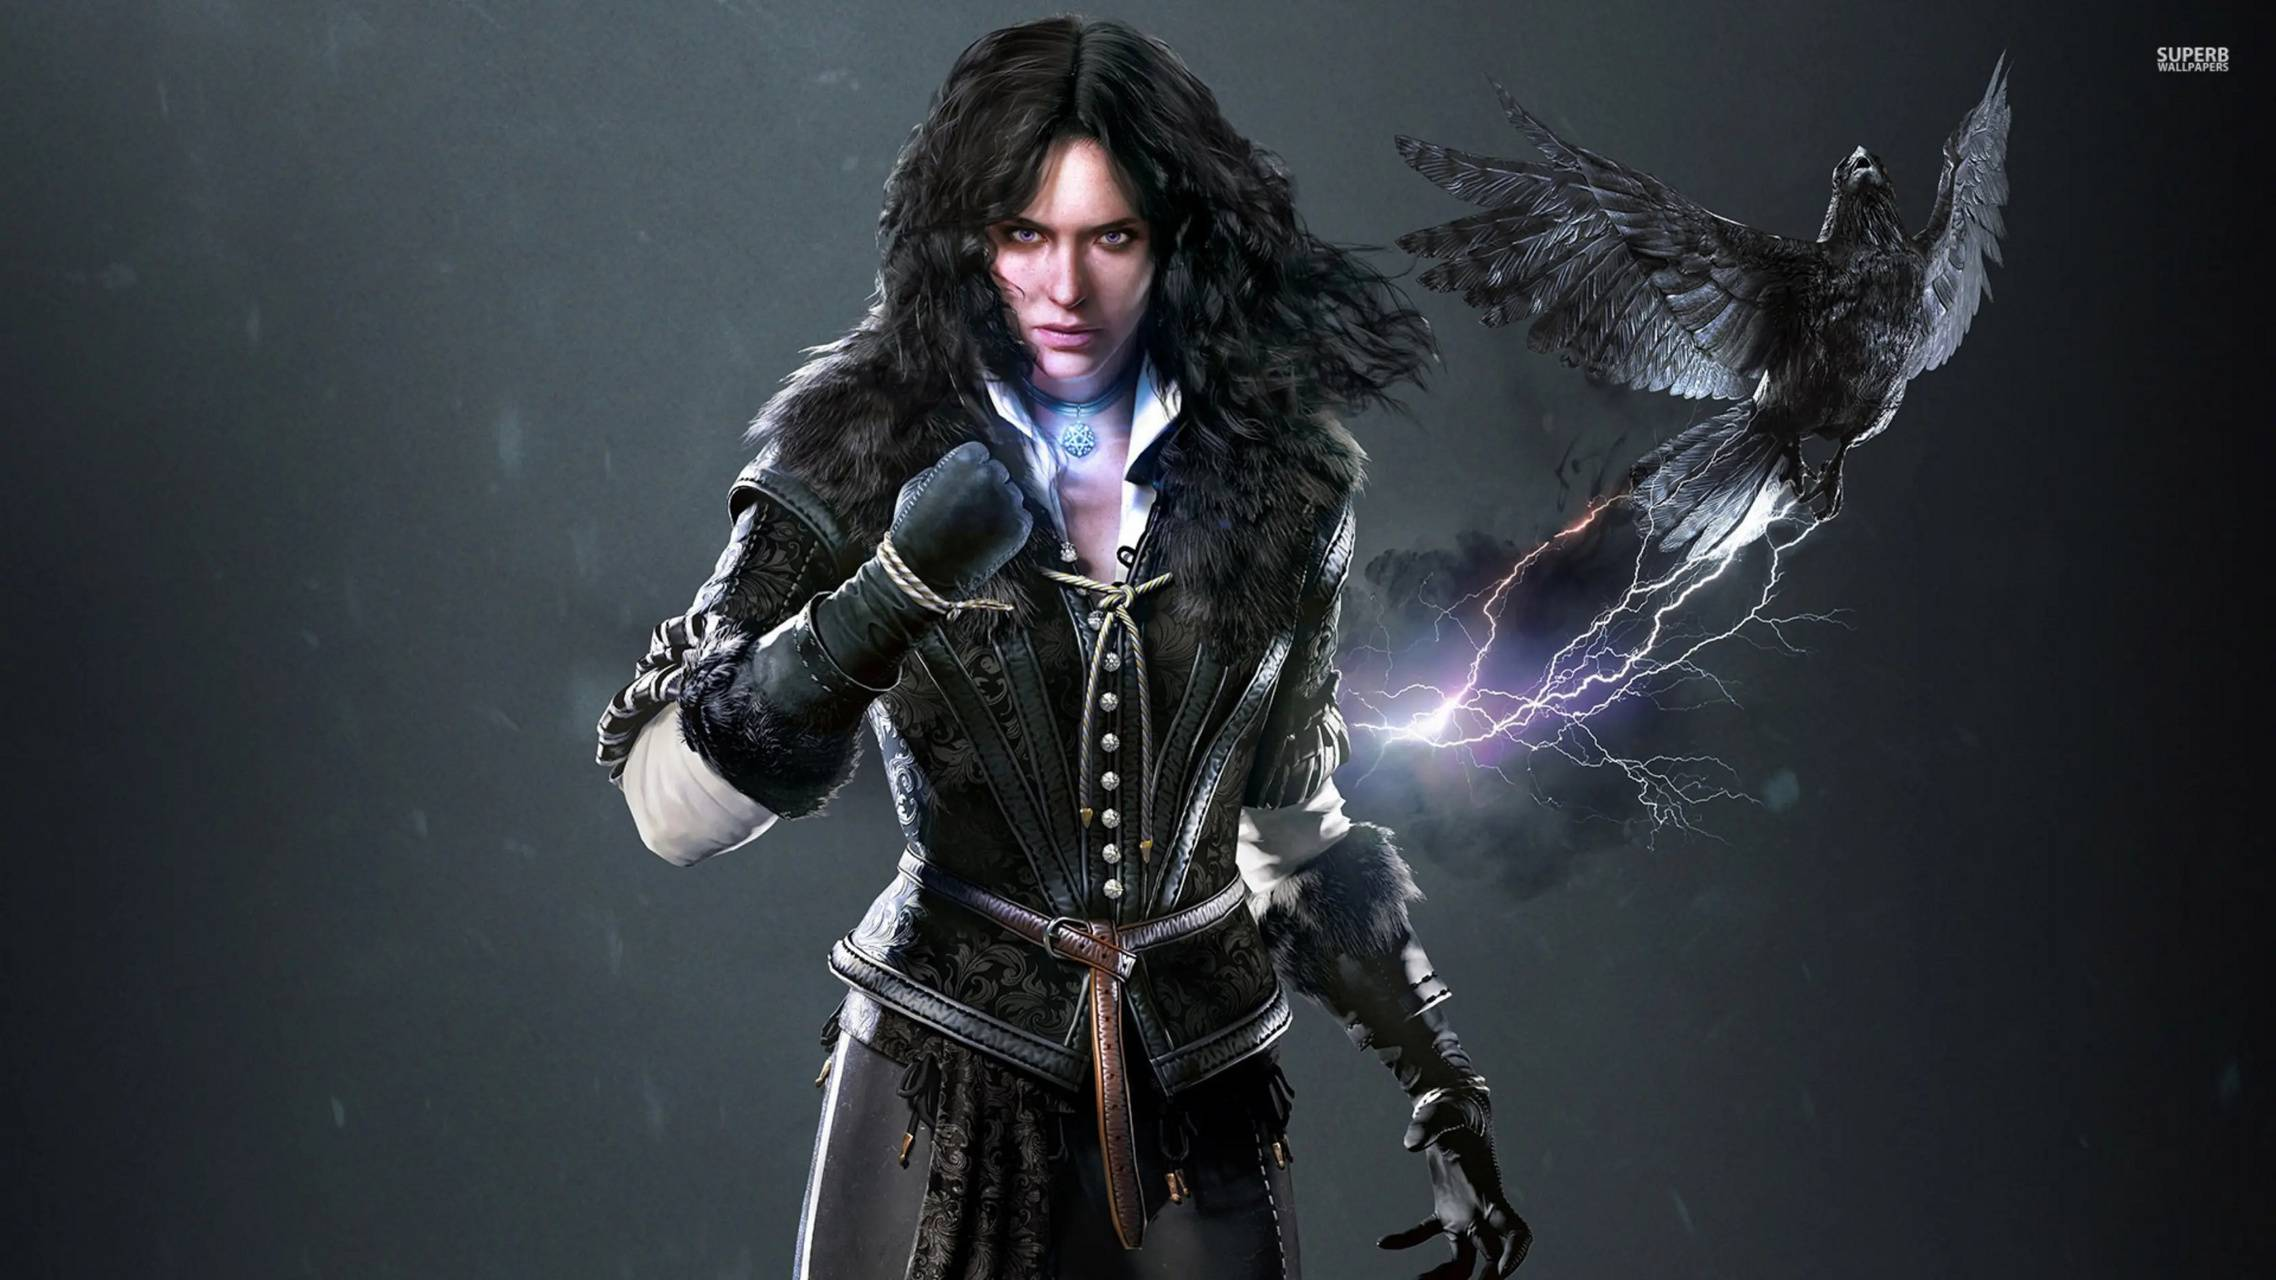 Witcher Yennefer